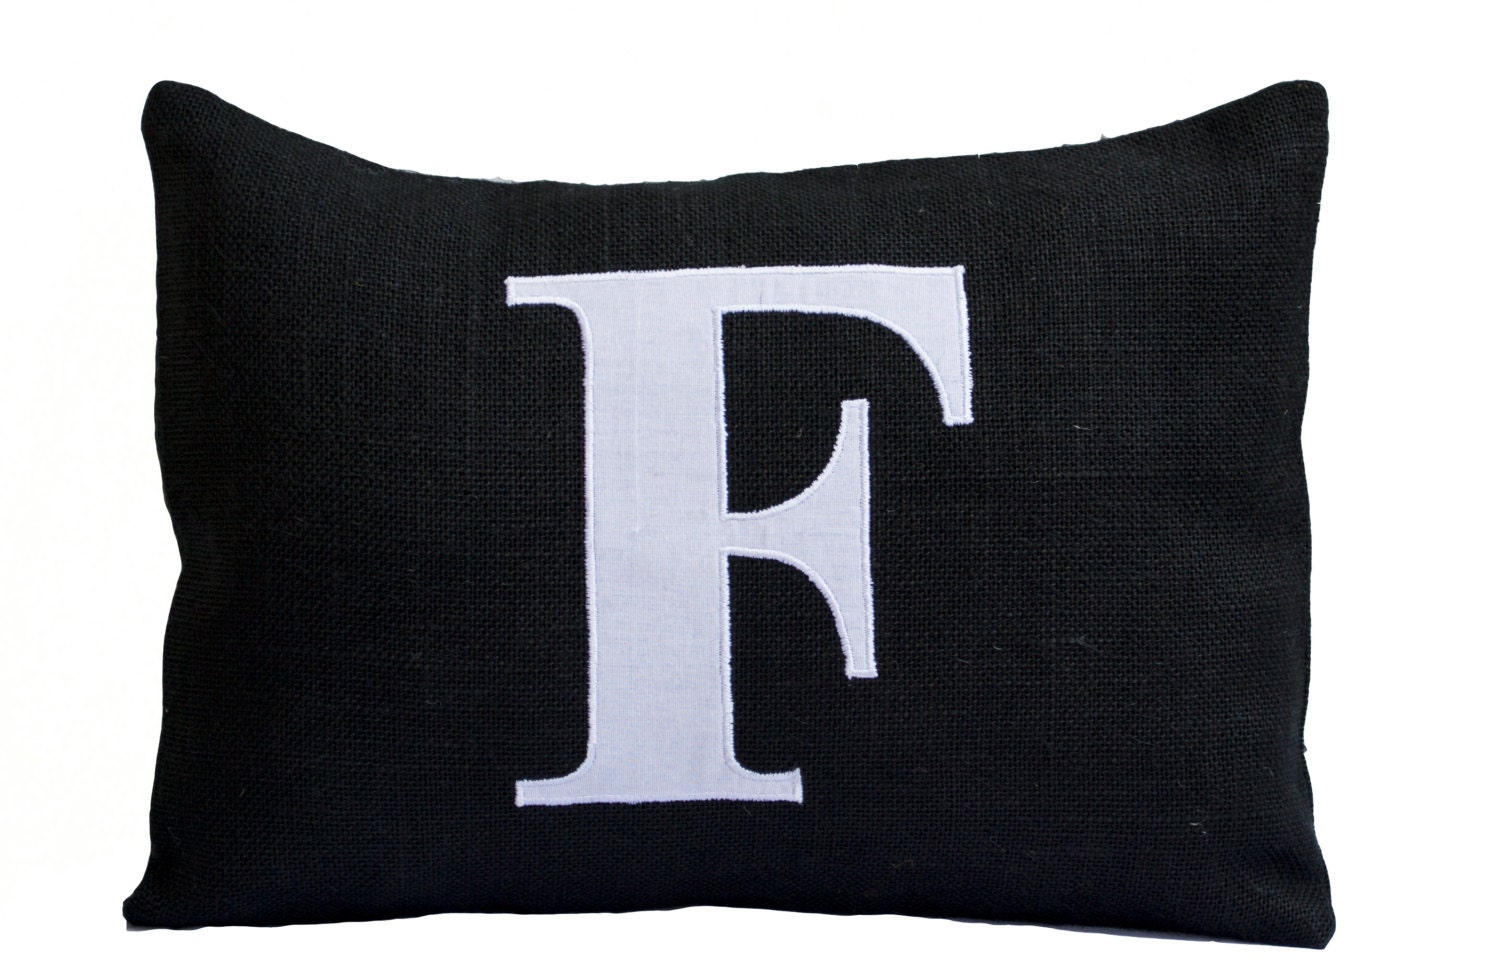 Personalized Monogram Lumbar Throw Pillow Burlap Pillows